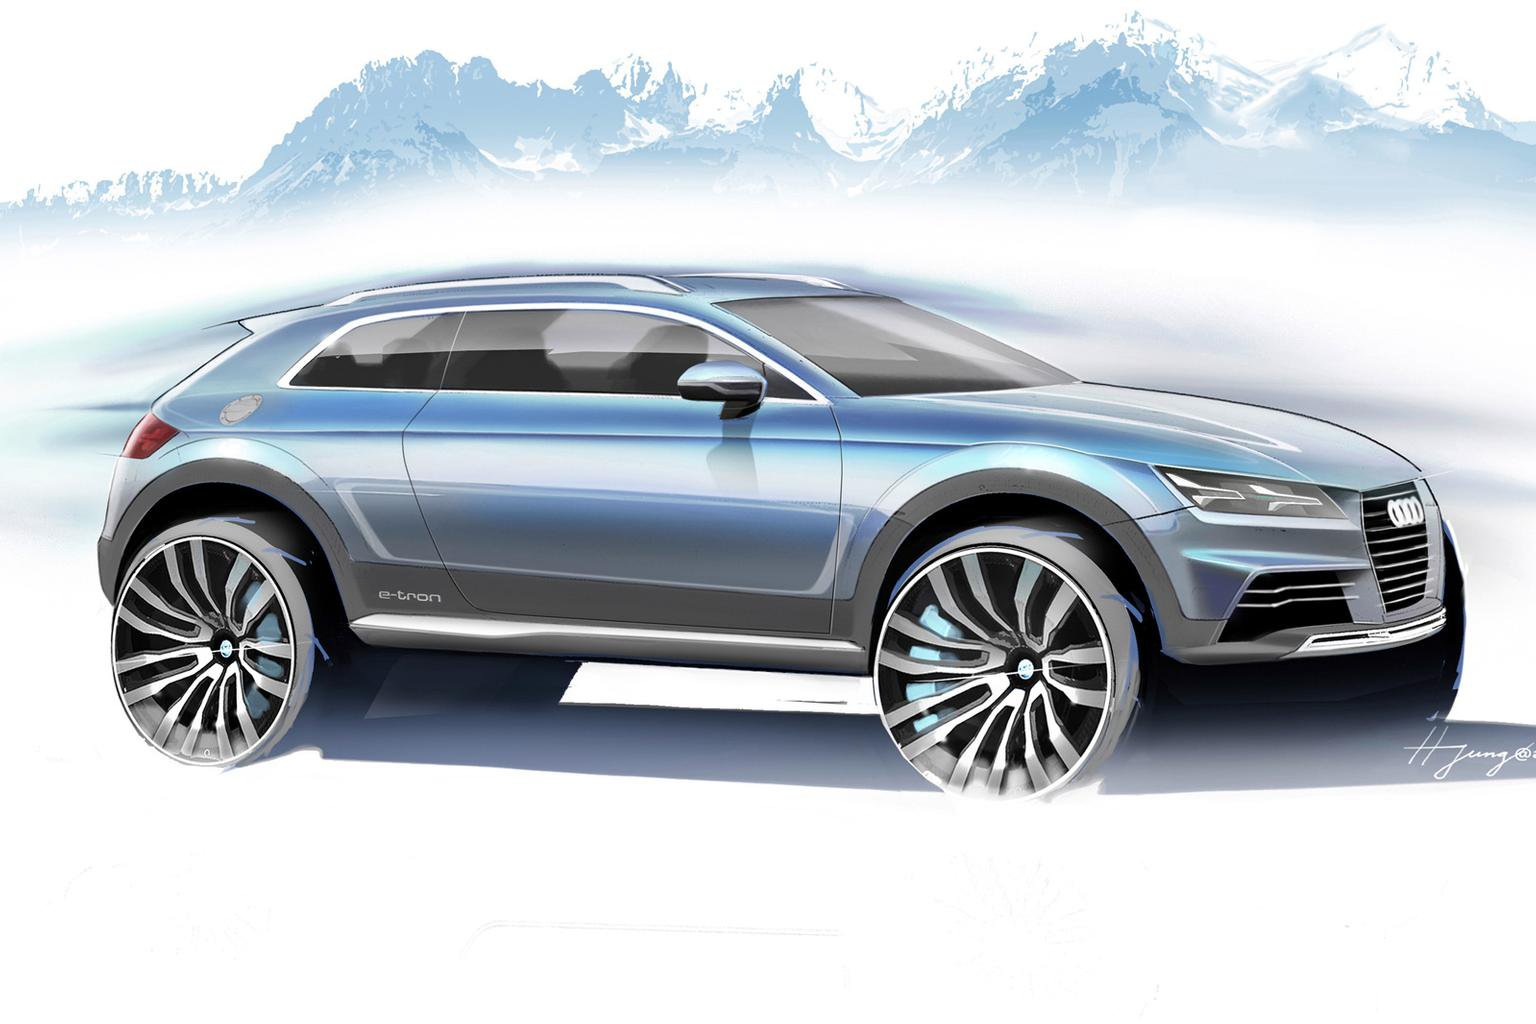 Audi crossover concept previewed before Detroit show